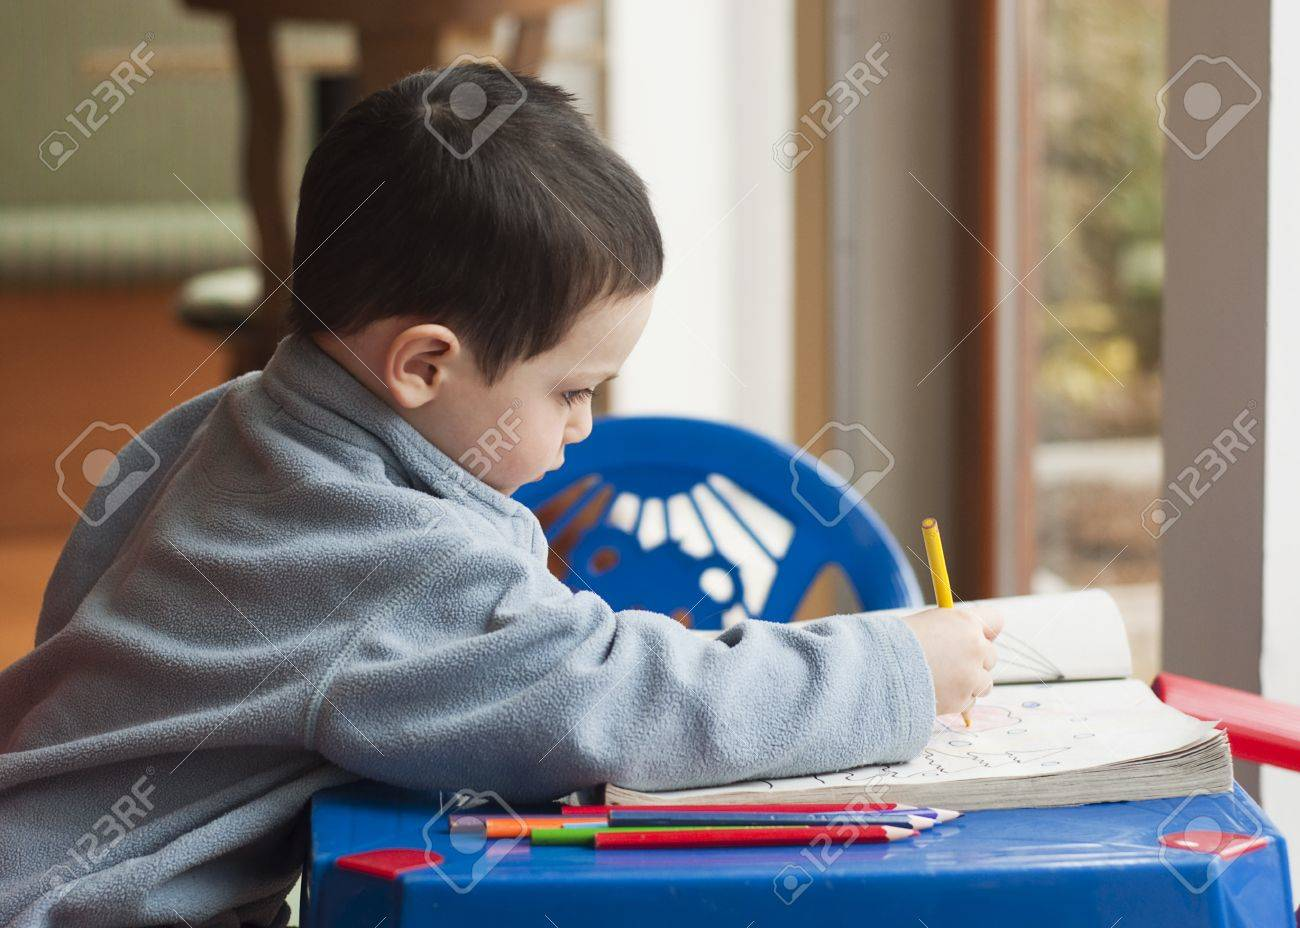 Profile Portrait Of A Small Child Drawing And Coloring Pictures With Colorful Crayons Sitting On